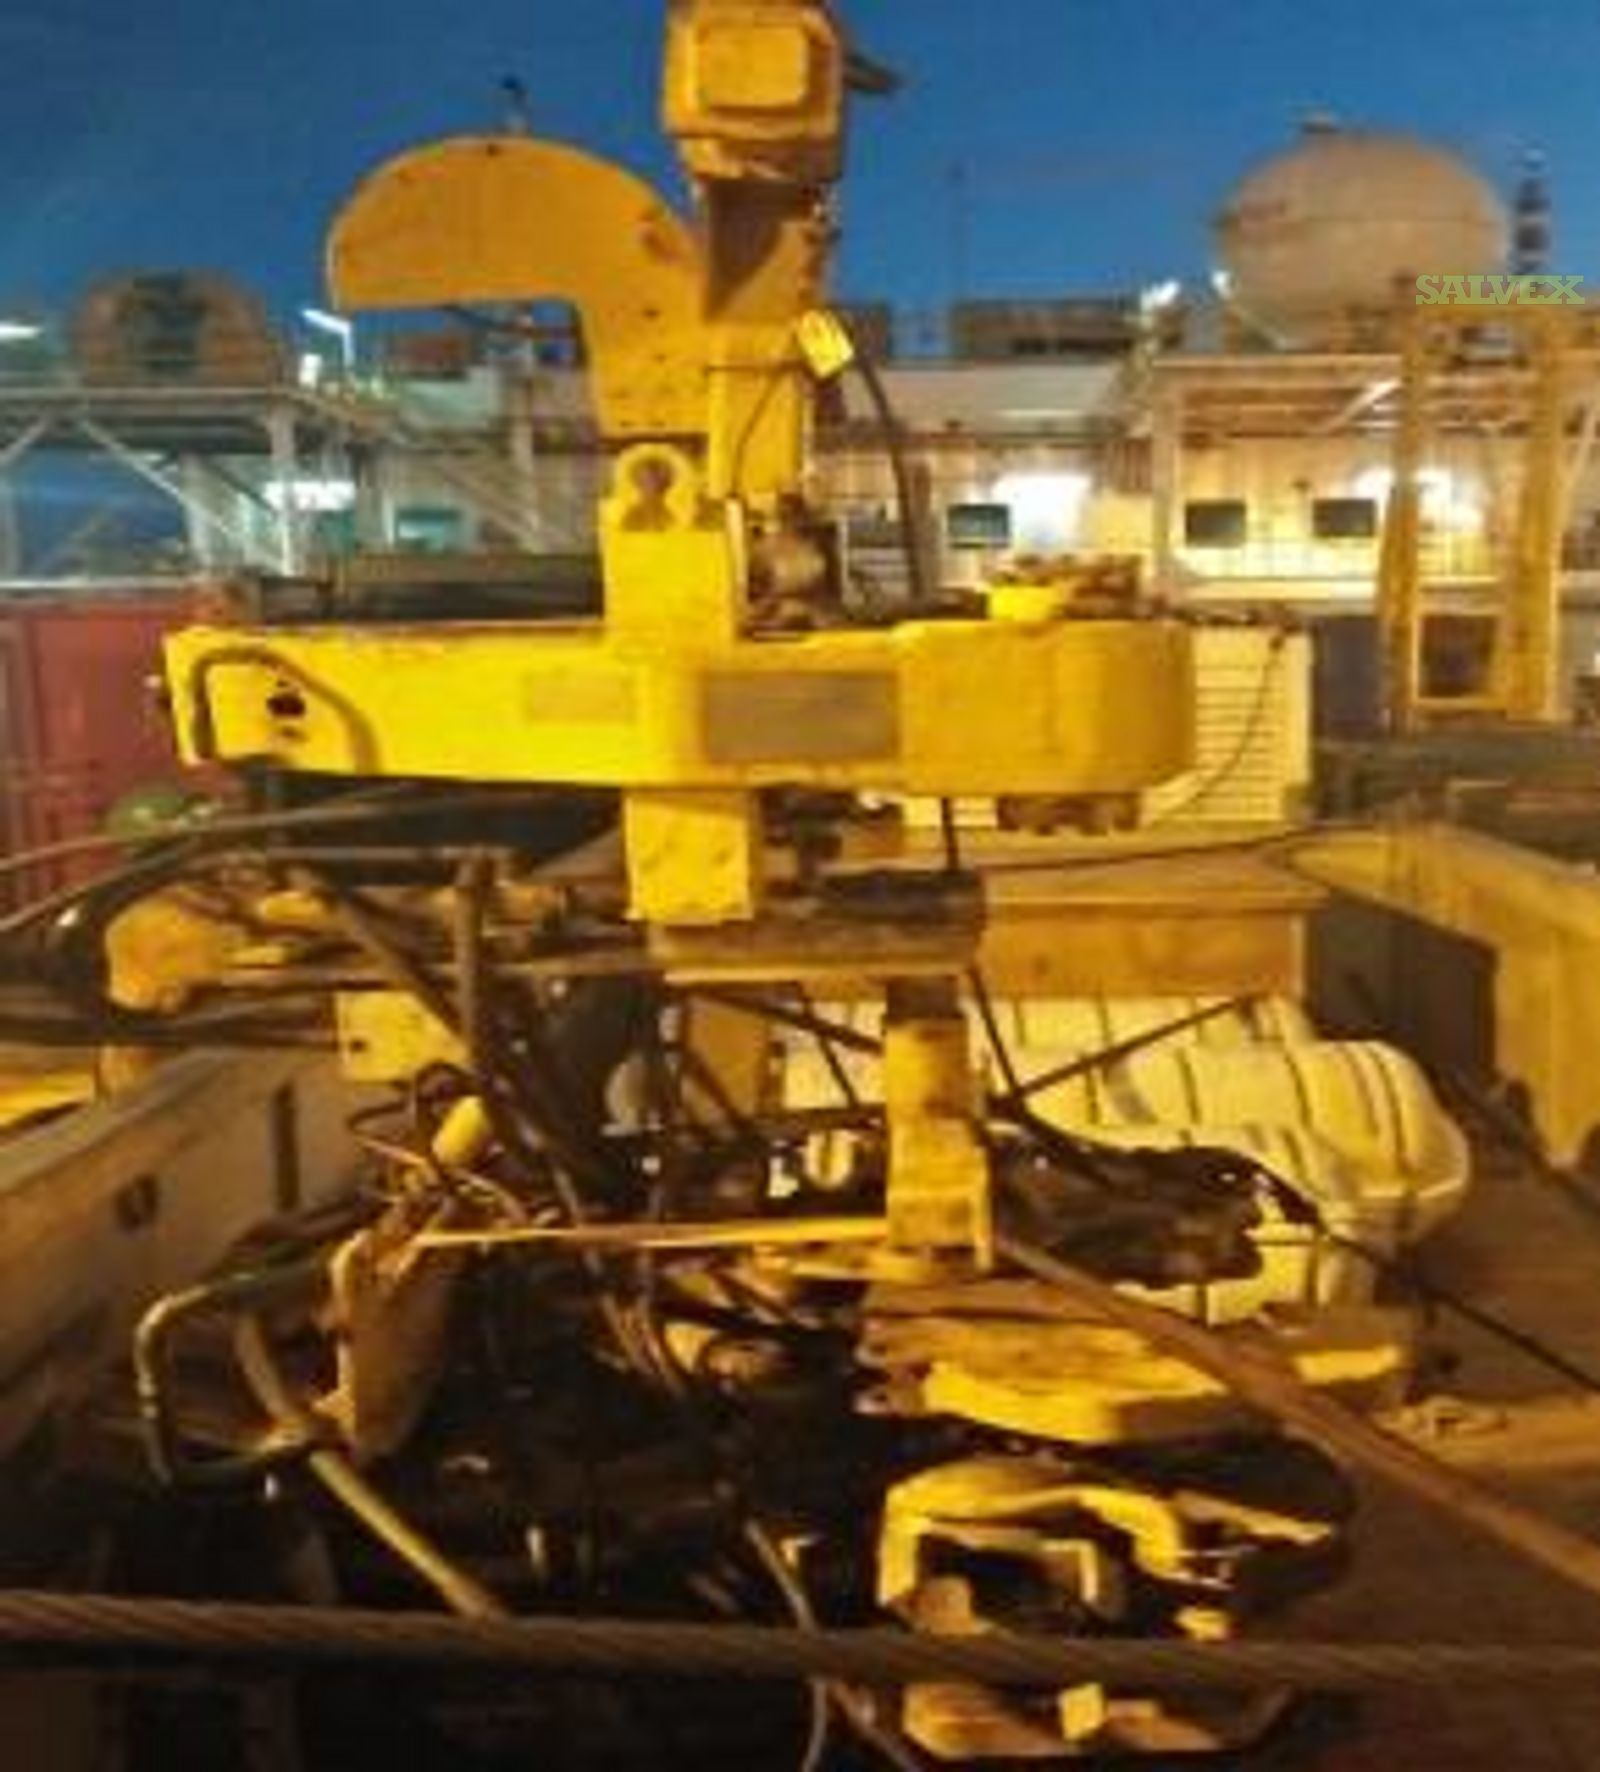 Metal Scrap: Hawk Integrated Make-Up / Break-out Tool, Centrifugal Pump, Steel Wire Rope and More   (25 Items)